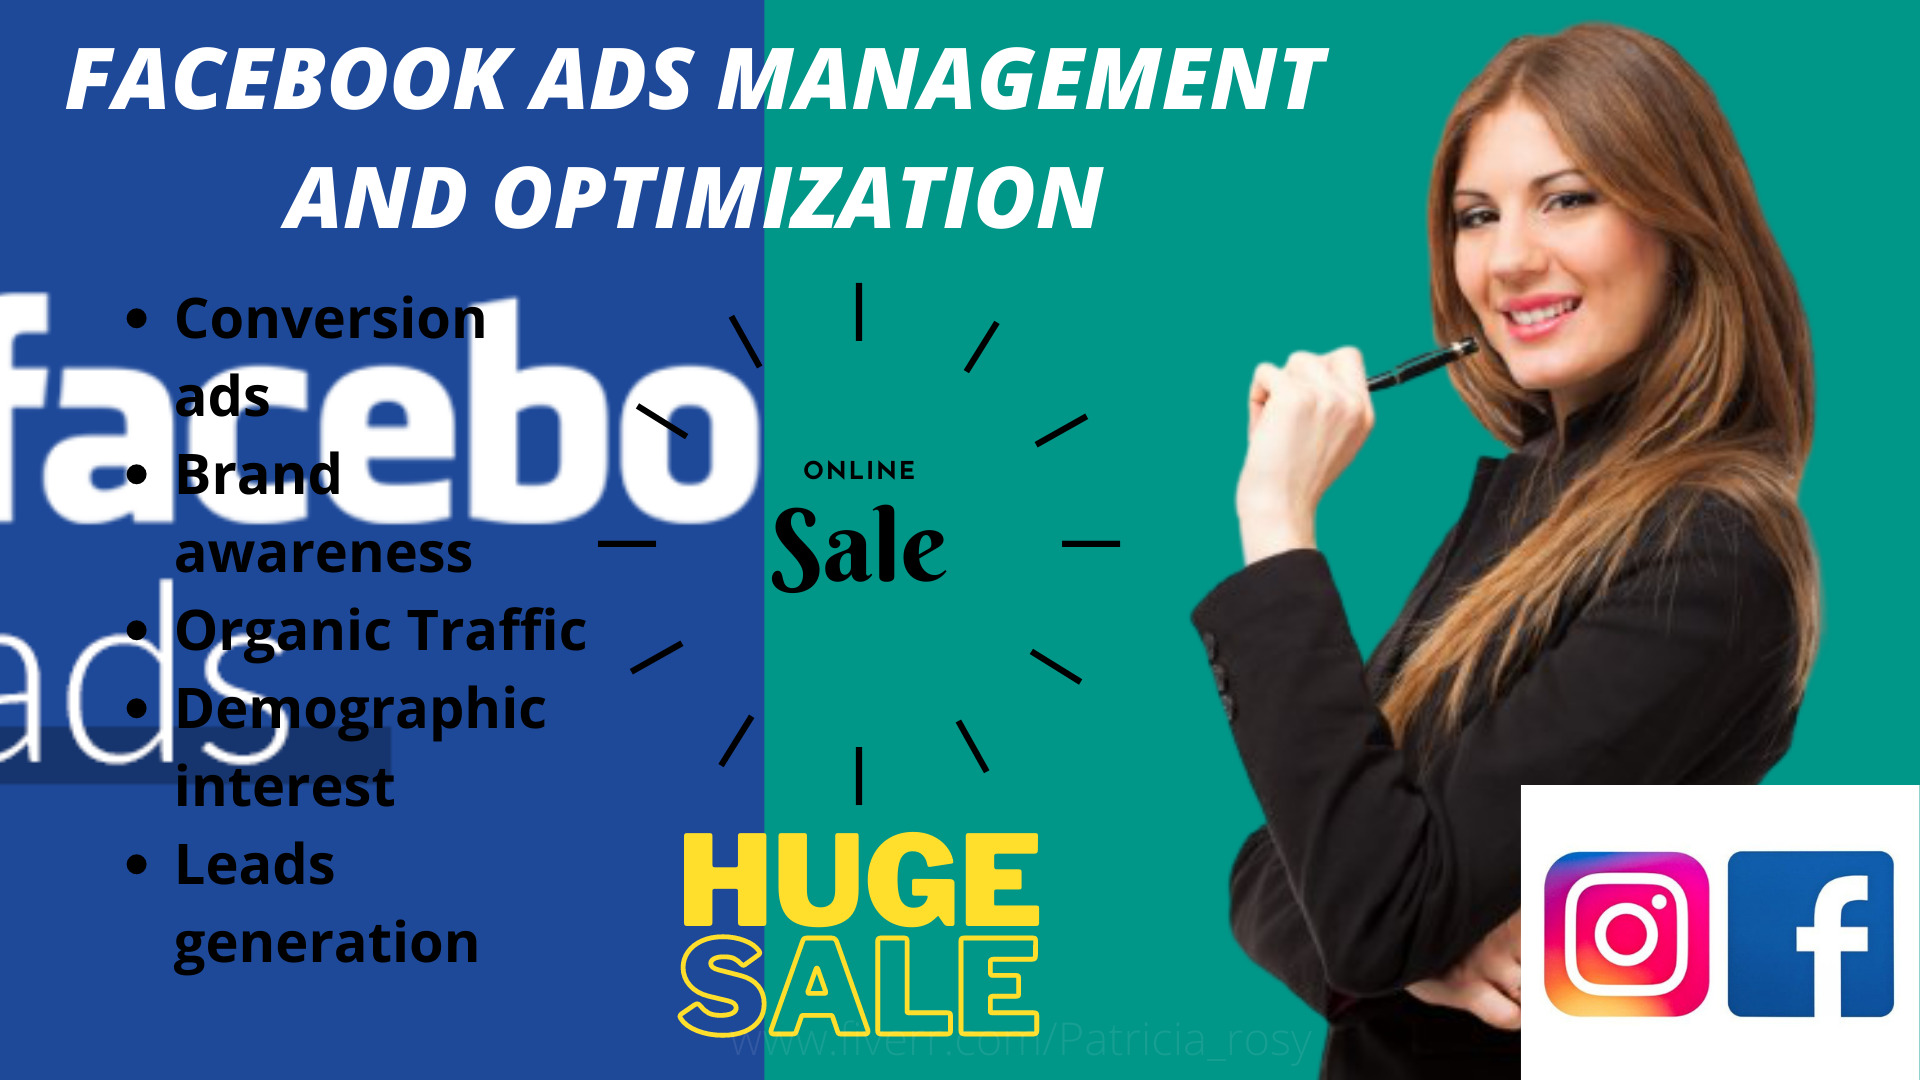 I will manage and optimize your facebook ads for conversion, FiverrBox